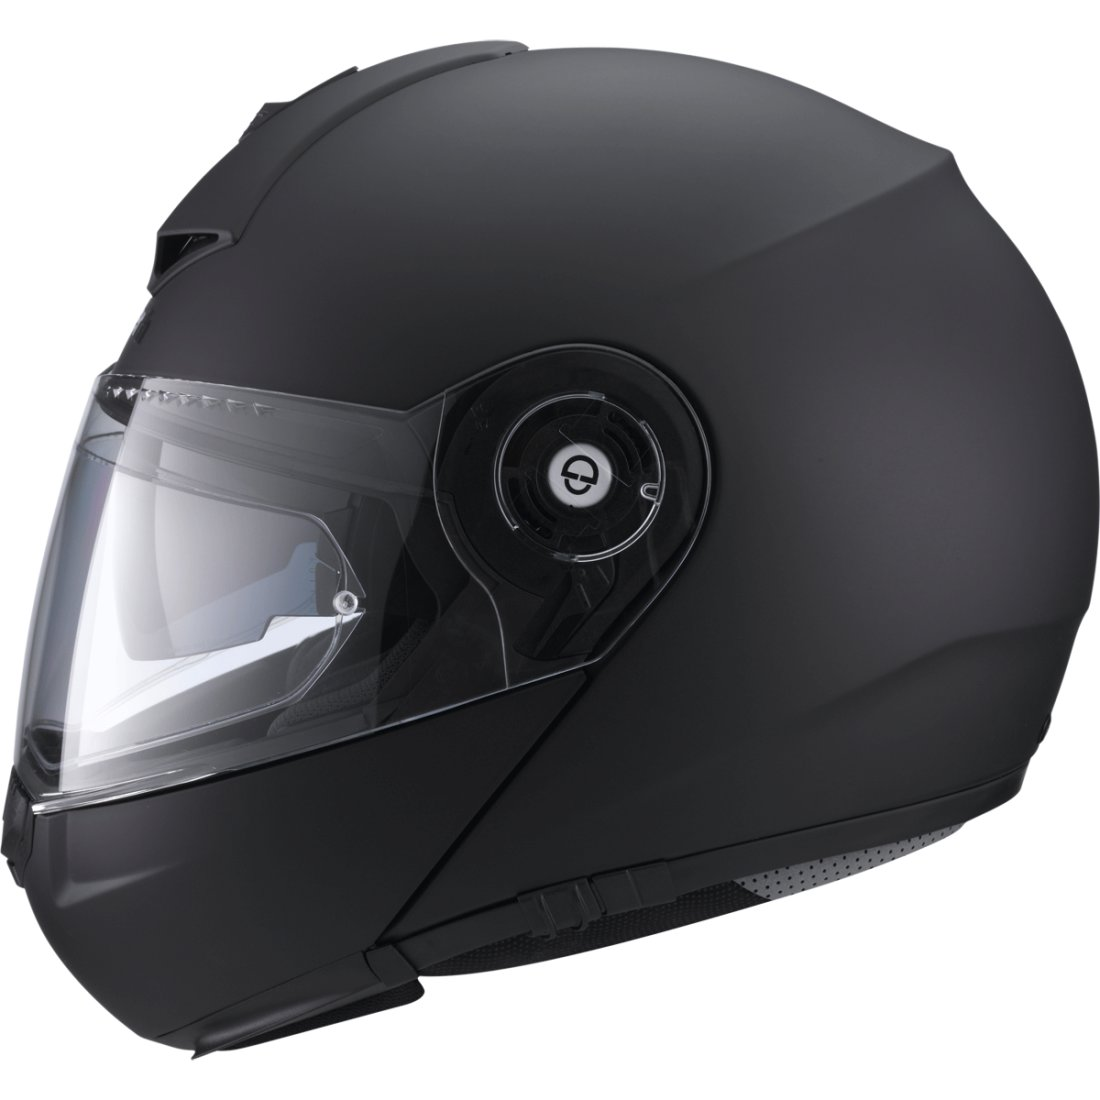 schuberth c3 pro matt black helmet motocard. Black Bedroom Furniture Sets. Home Design Ideas